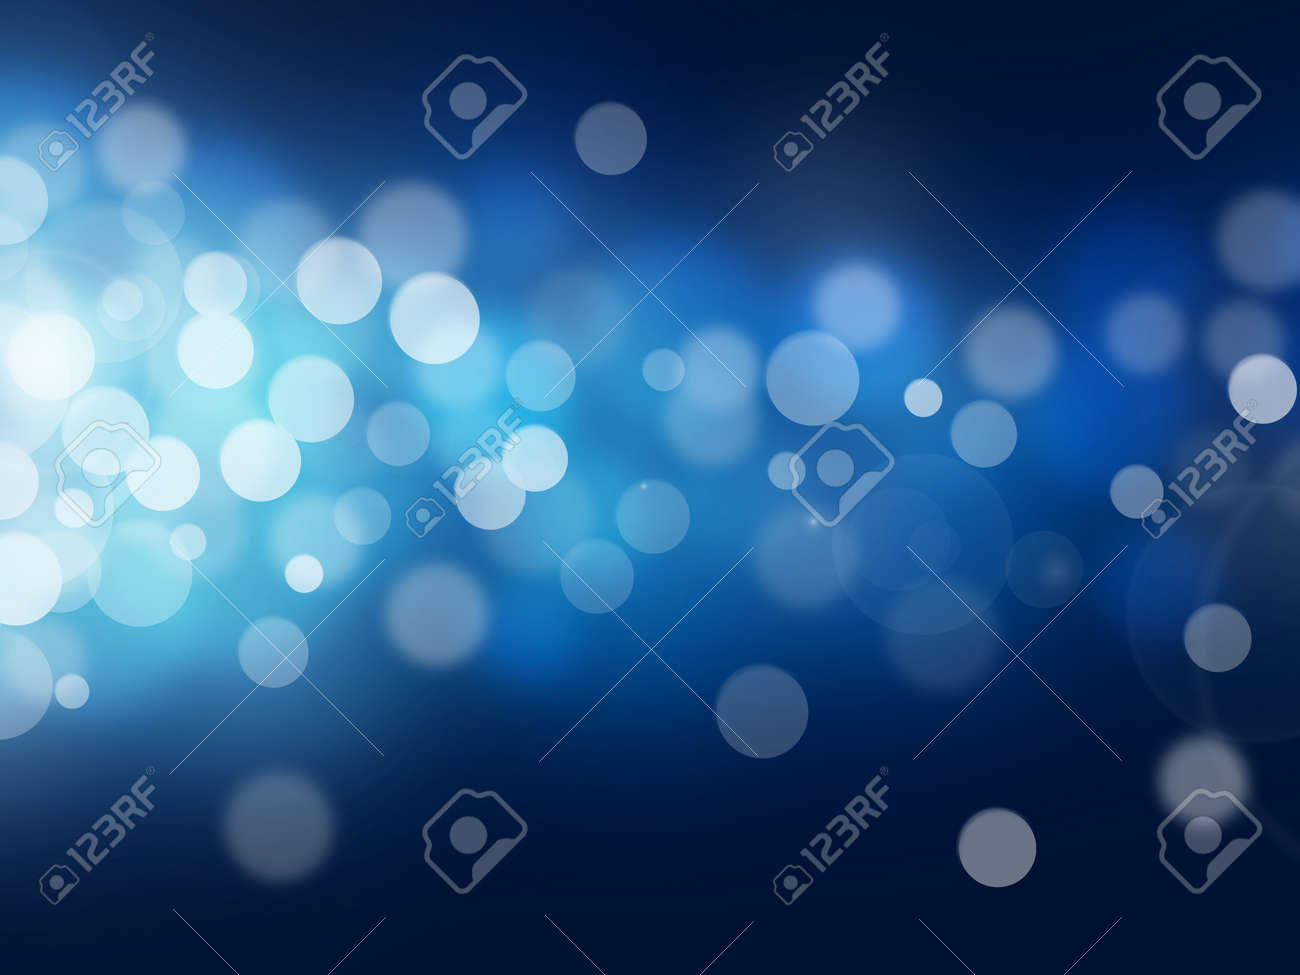 blue bokeh abstract light backgrounds Stock Photo - 23653106